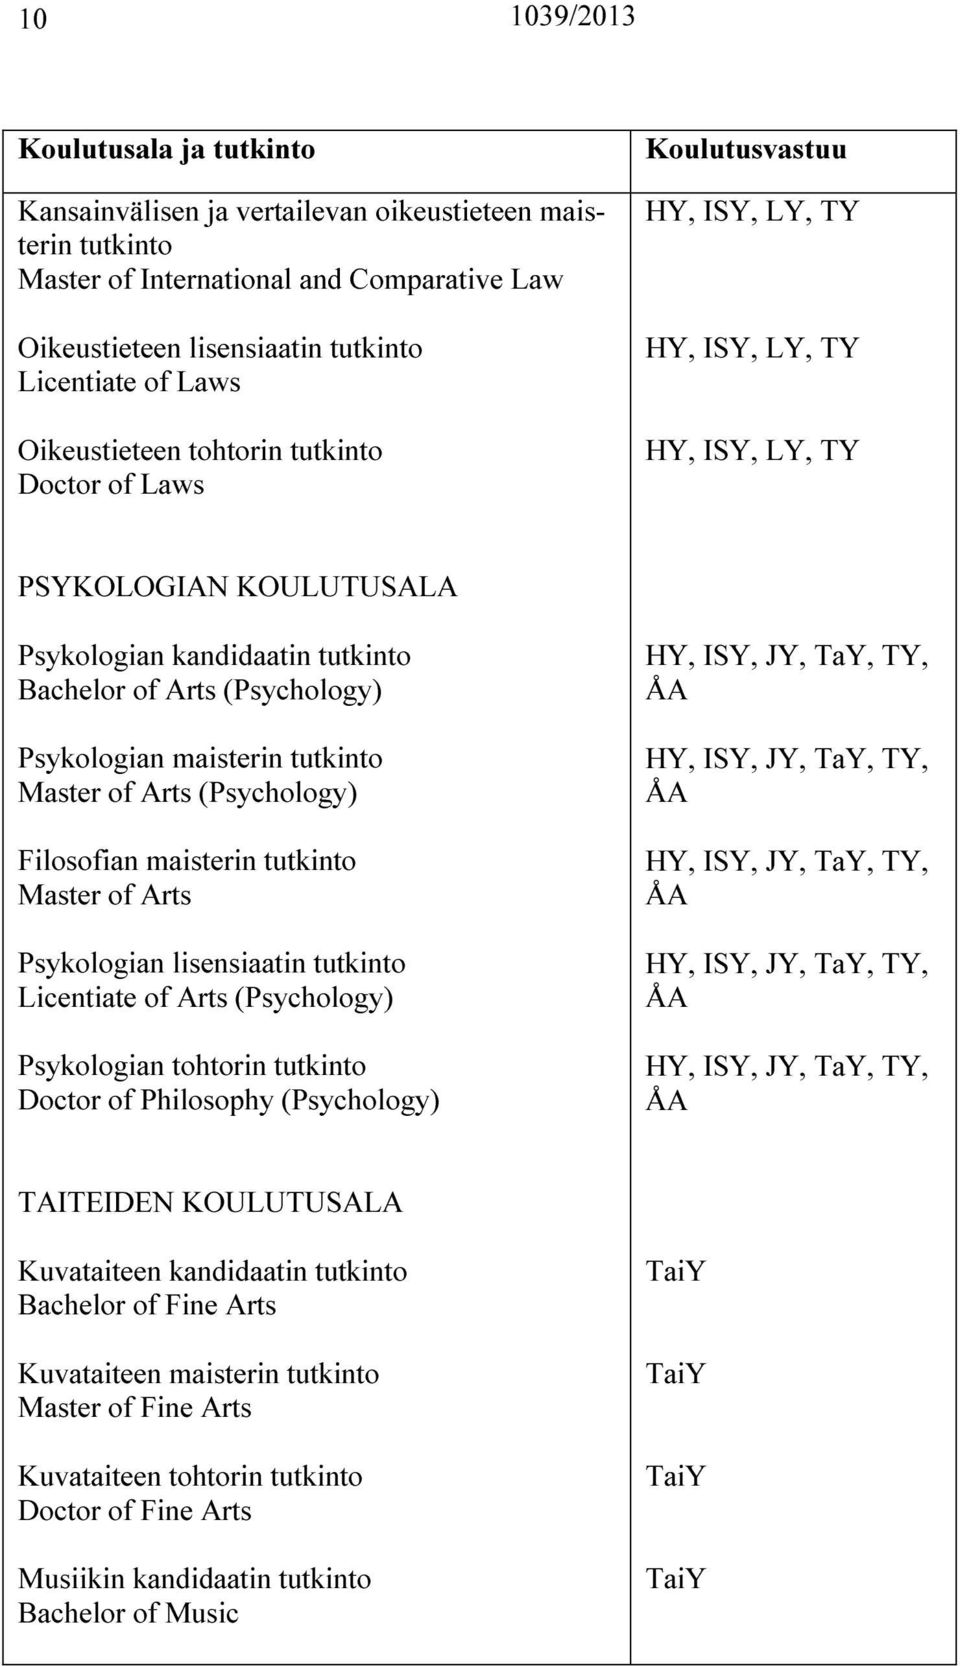 (Psychology) Filosofian maisterin tutkinto Master of Arts Psykologian lisensiaatin tutkinto Licentiate of Arts (Psychology) Psykologian tohtorin tutkinto Doctor of Philosophy (Psychology), ISY, JY,